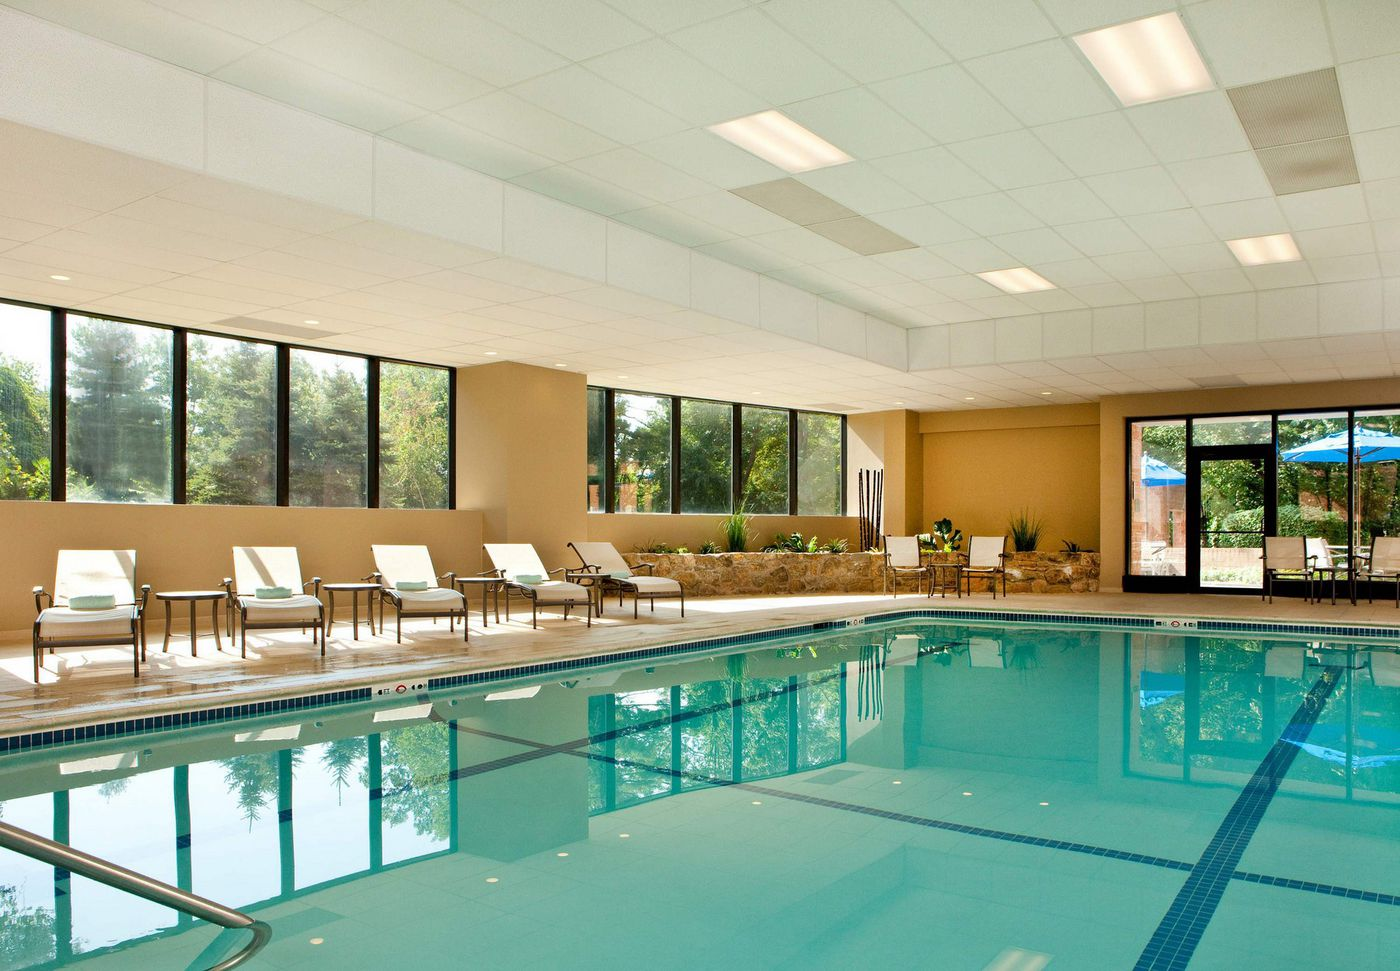 Indoor Swimming Pools 101: Cost, Construction, Advantages, and Other Questions Explained!